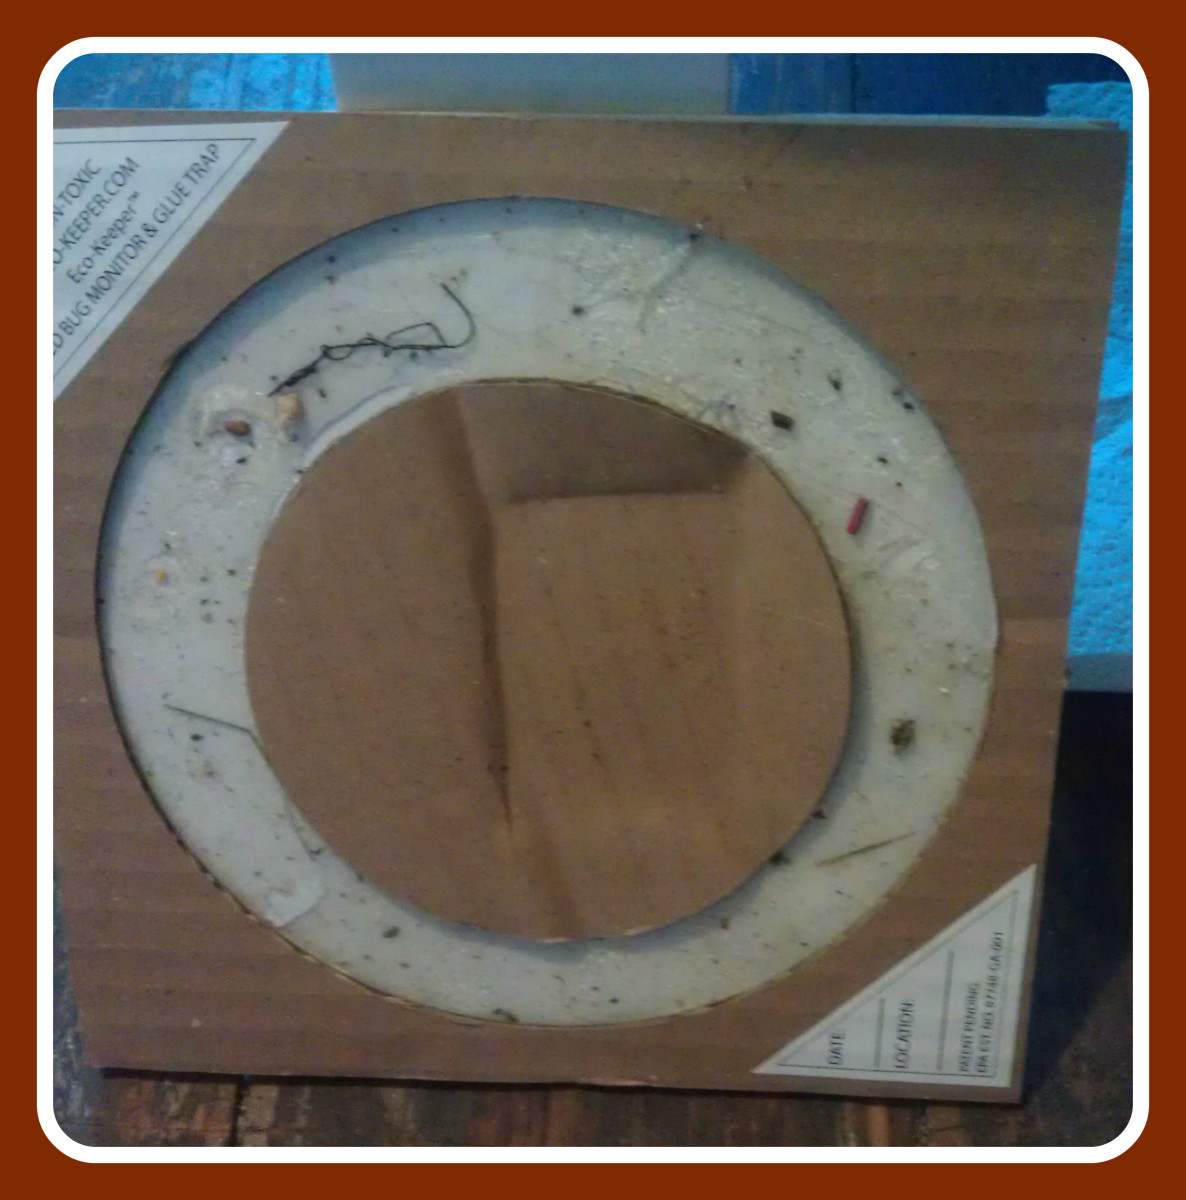 The Eco-Keeper Glue Trap. A type of bed bug prevention and treatment tool.